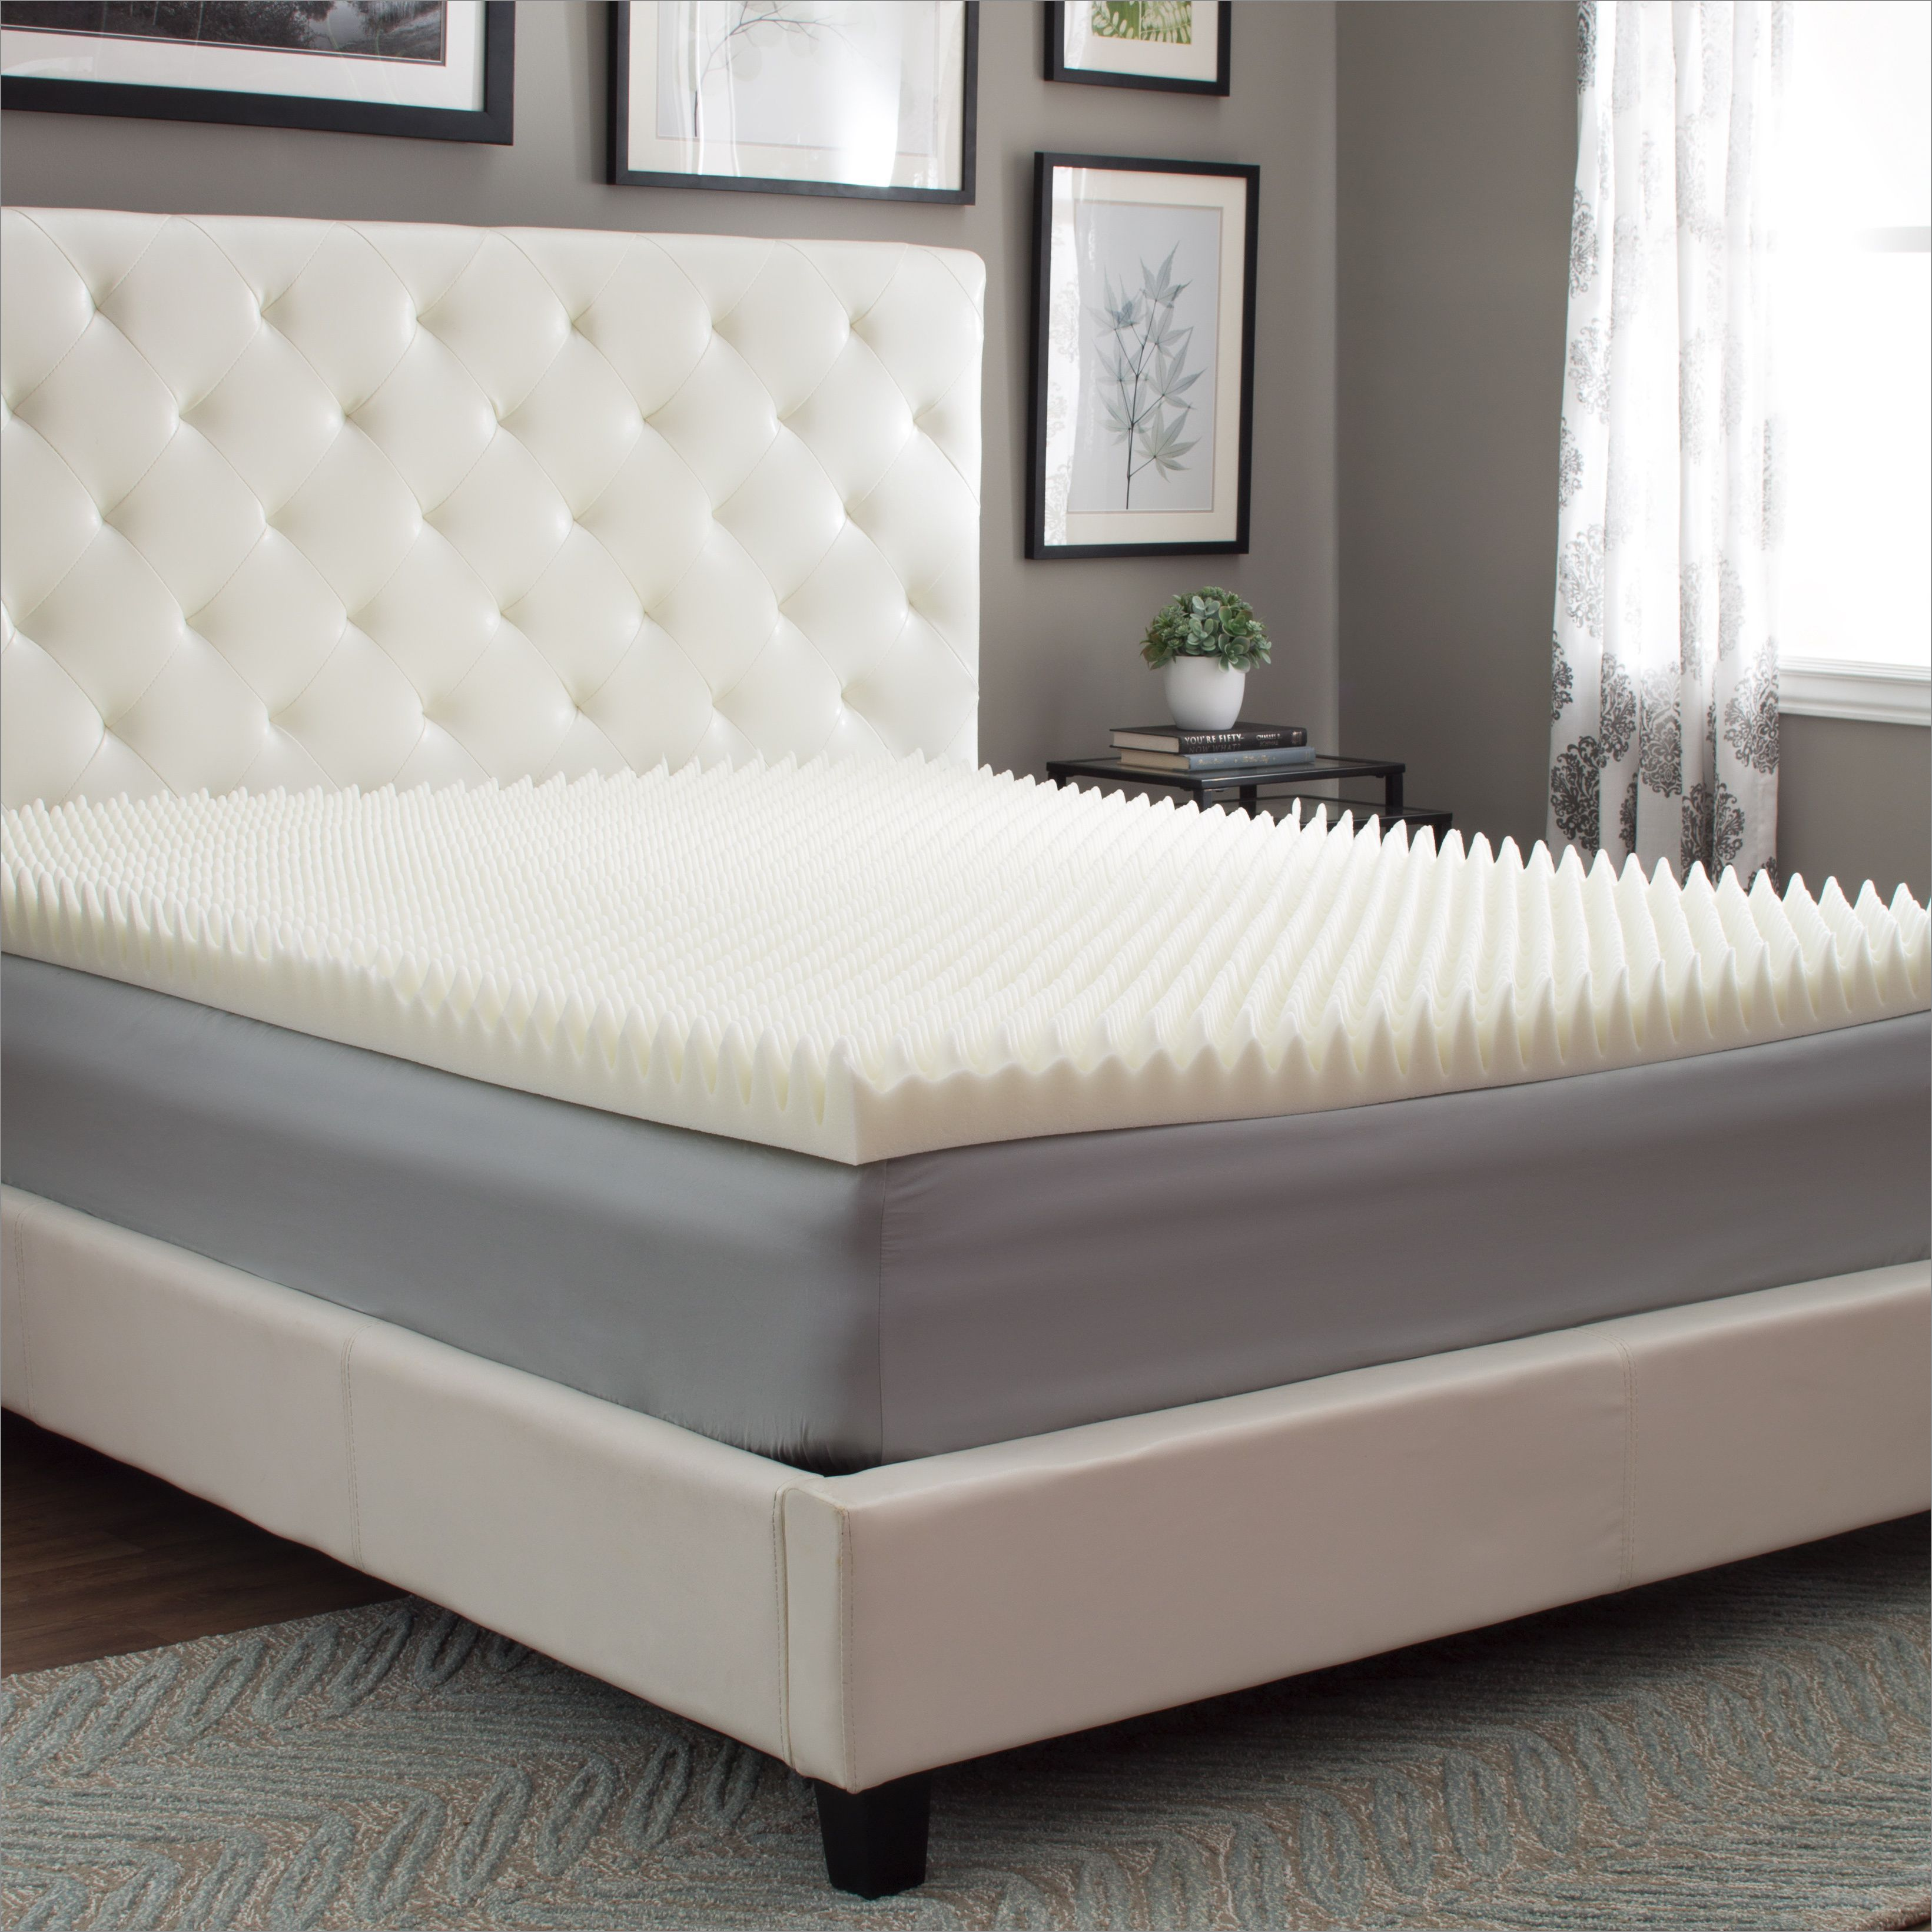 4 Inch Mattress Topper Queen Check More At Https Www Cdomakis Photography Com 4 Inch Mattress Topper Quee Mattress Foam Mattress Bed Memory Foam Mattress Pad